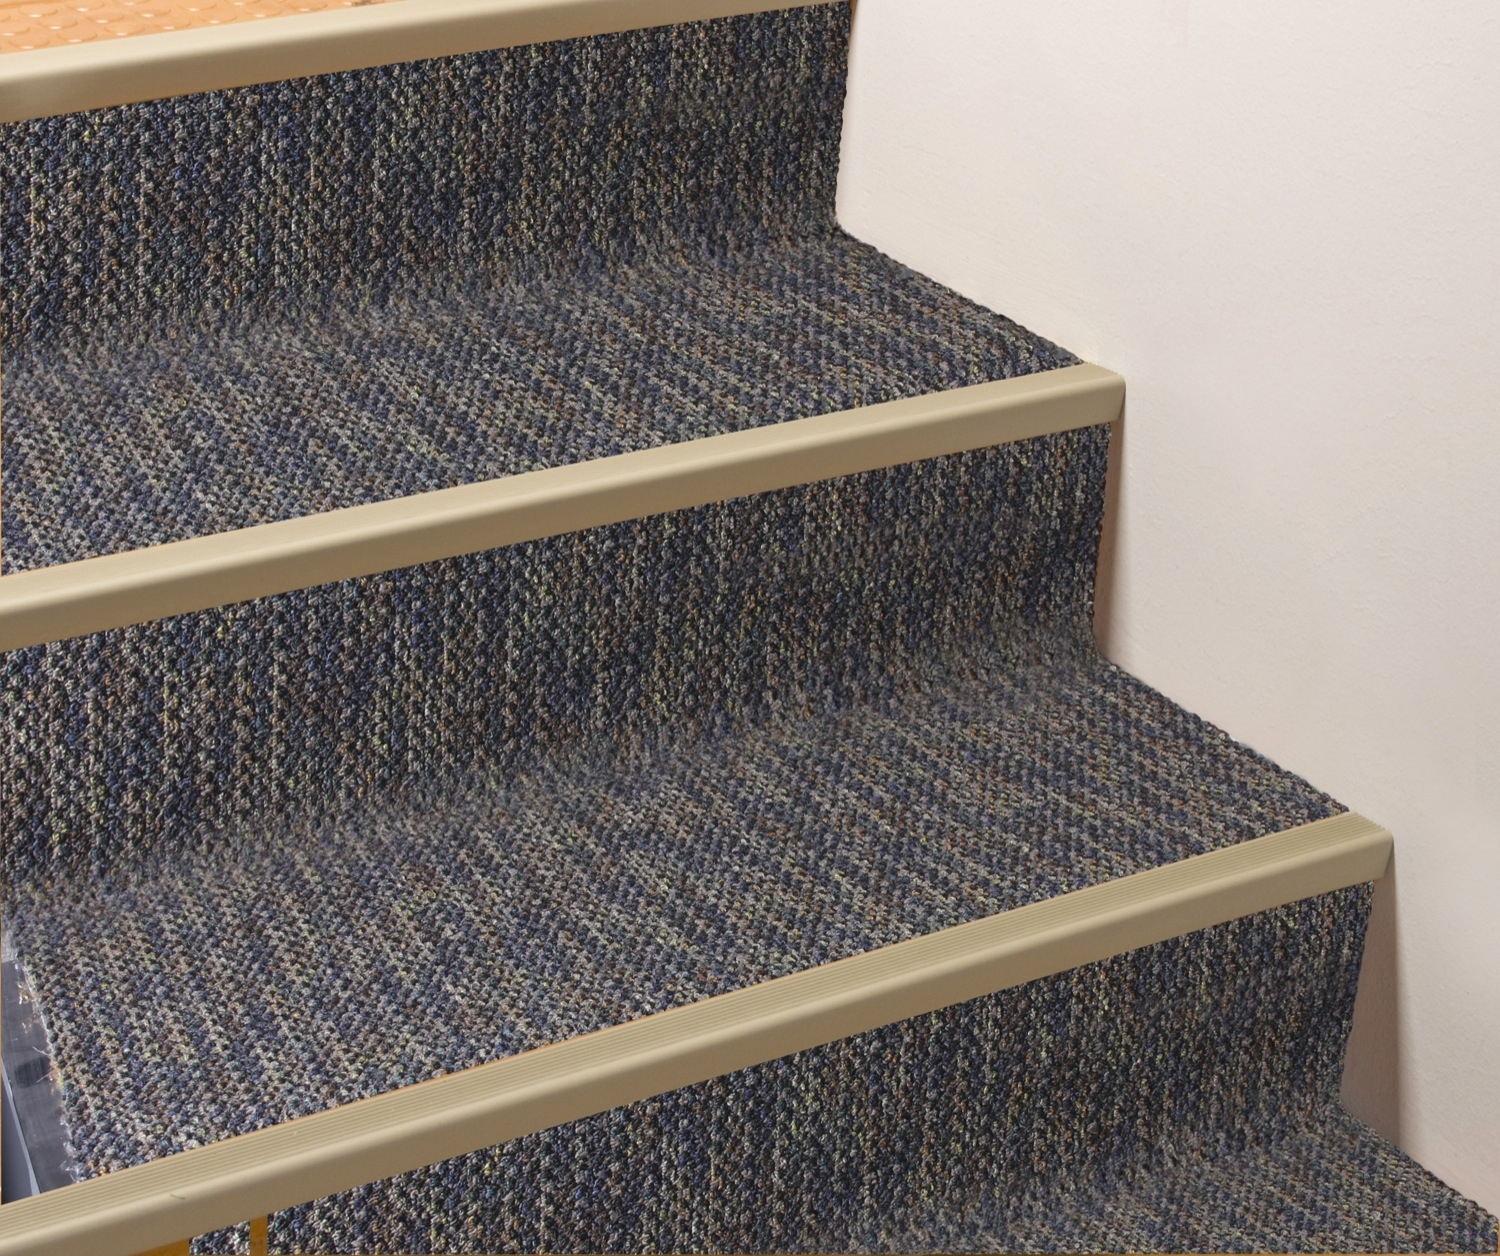 Top 15 Adhesive Carpet Strips For Stairs Stair Tread   Rug Strips For Stairs